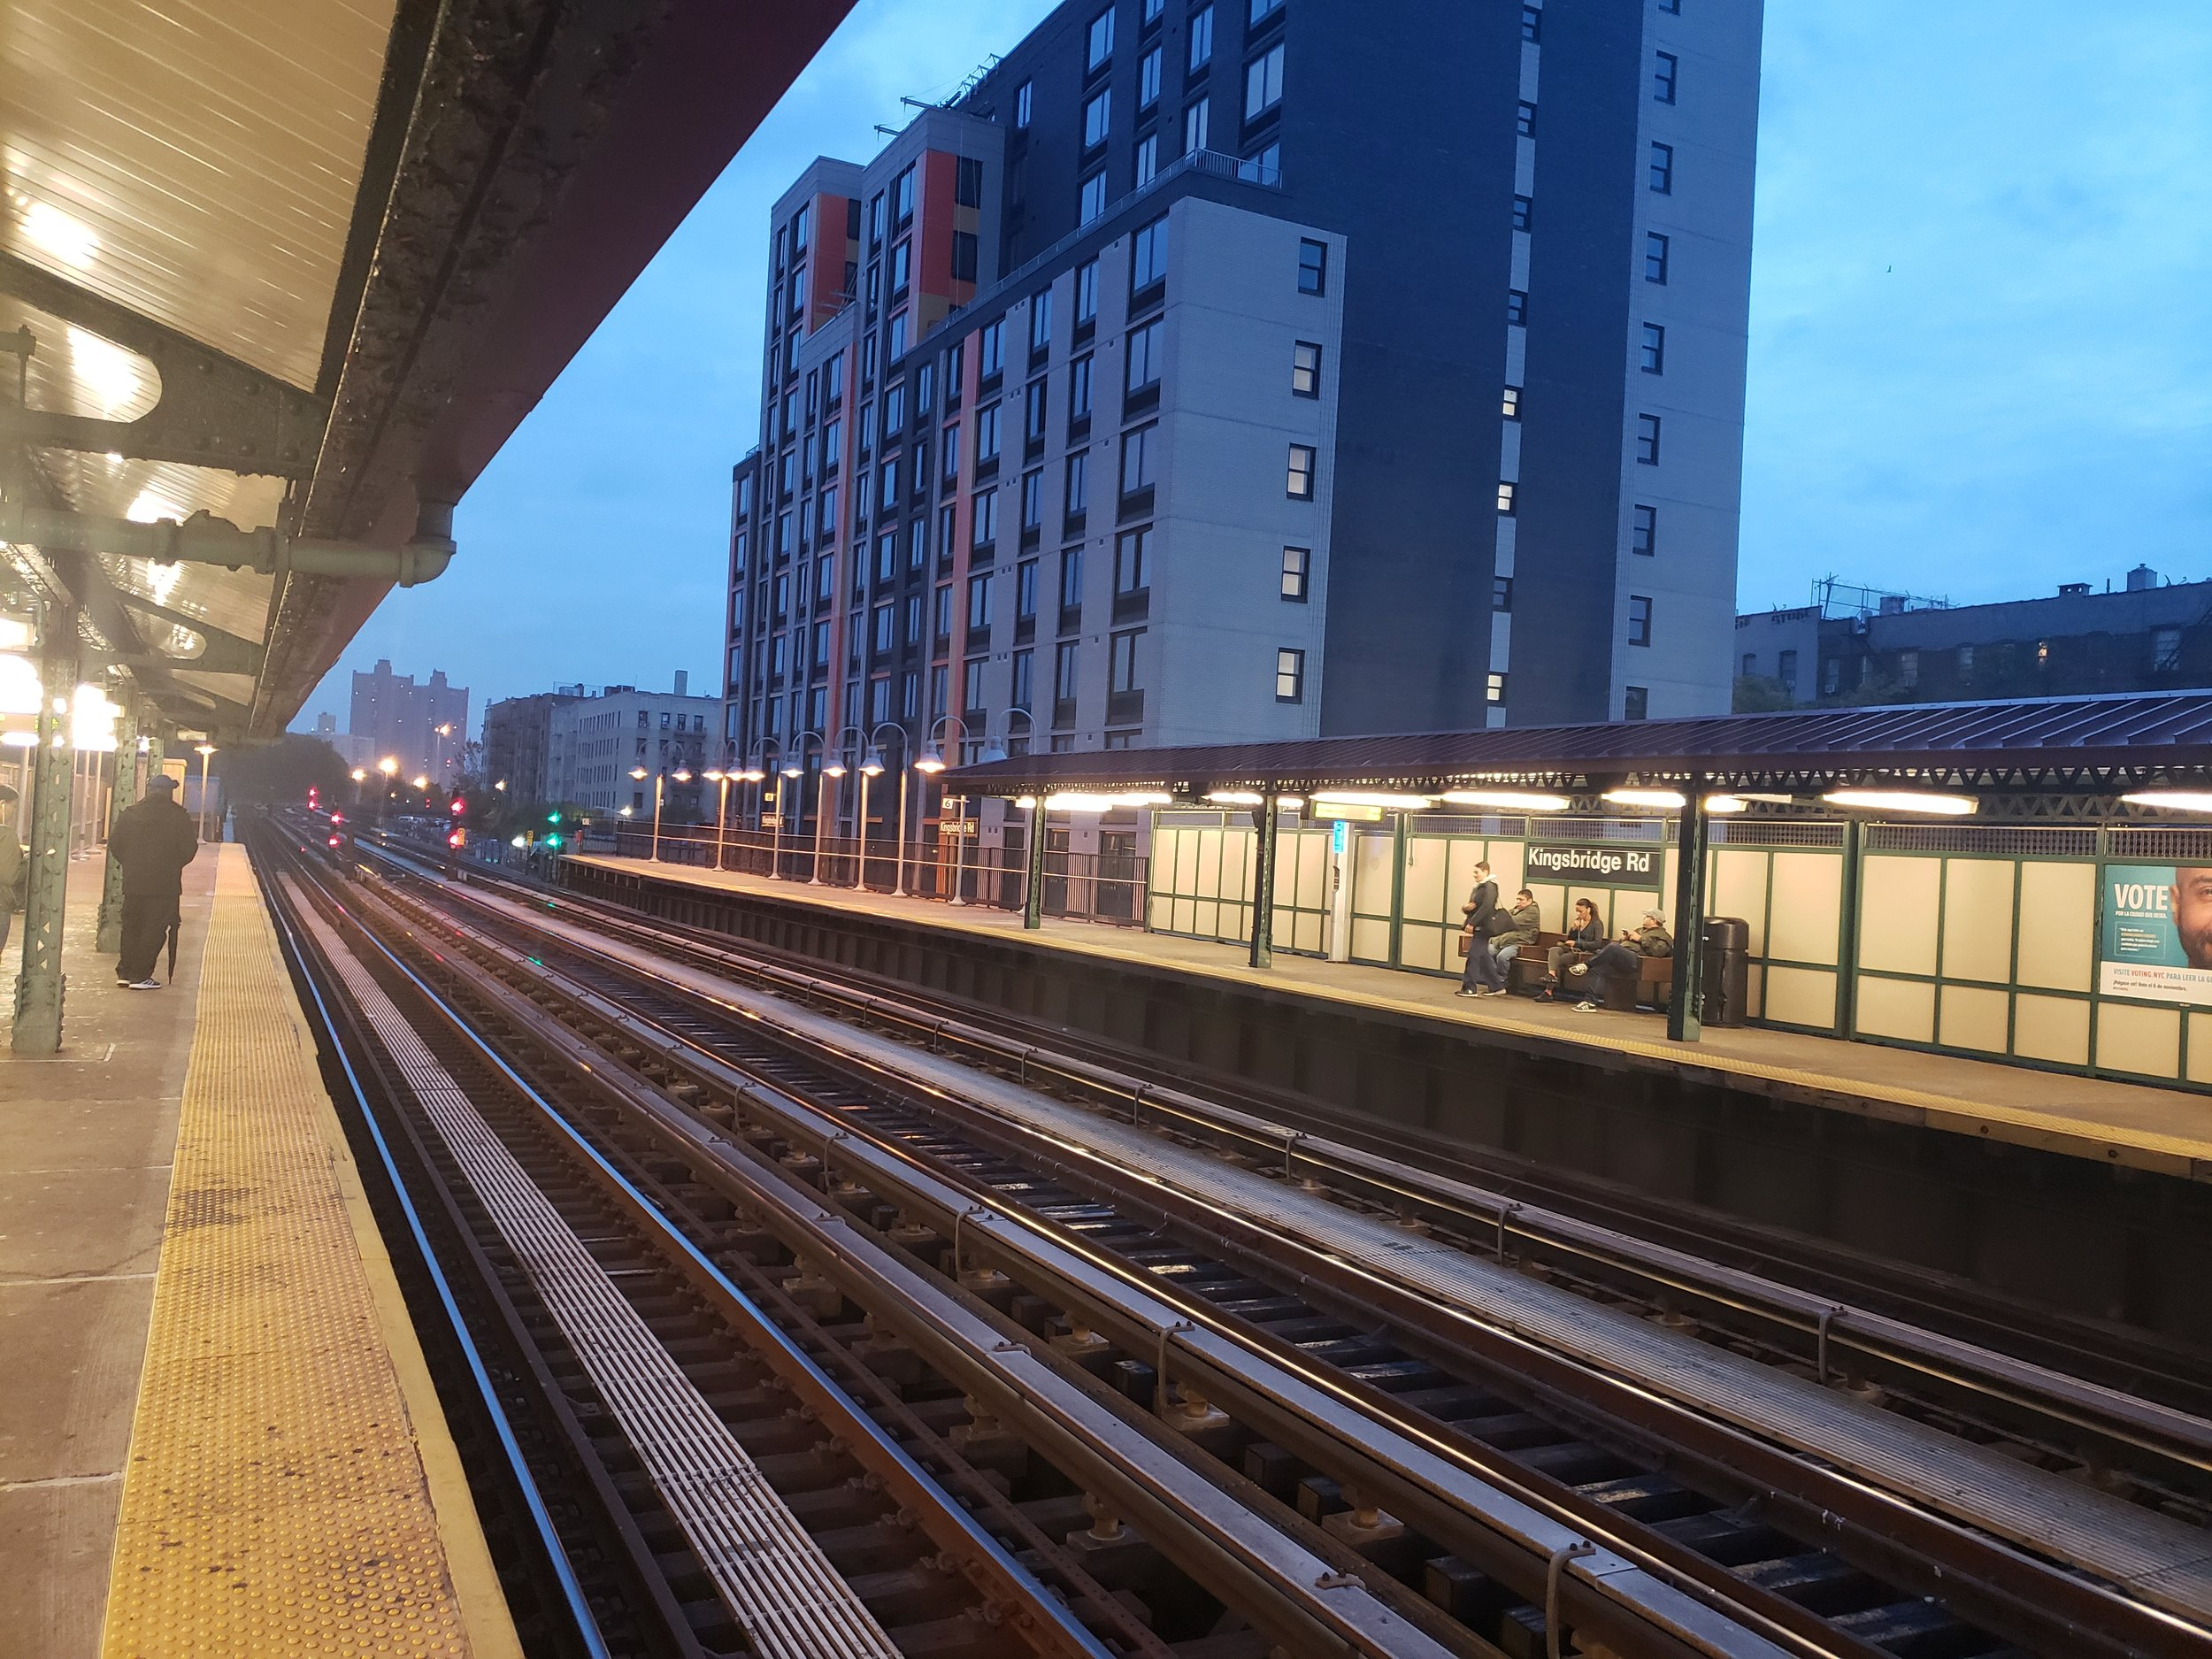 A view of the Kingsbridge Road subway station of the 4 Train, close to Lehman's entrance to the Student Life Building and Sports Field. Photo by Perla Tolentino.